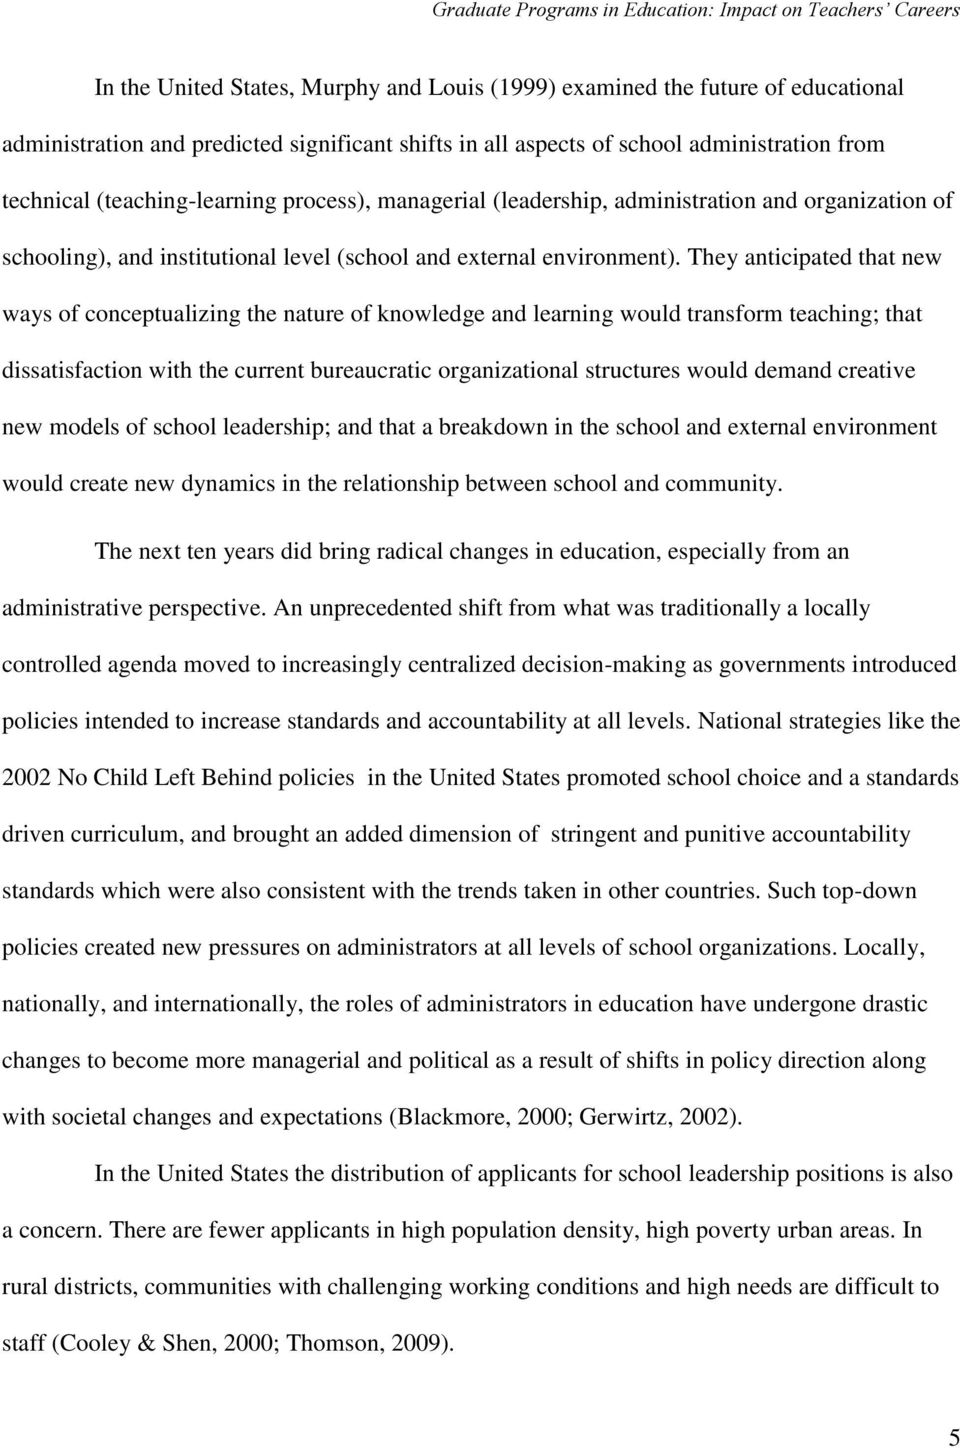 They anticipated that new ways of conceptualizing the nature of knowledge and learning would transform teaching; that dissatisfaction with the current bureaucratic organizational structures would